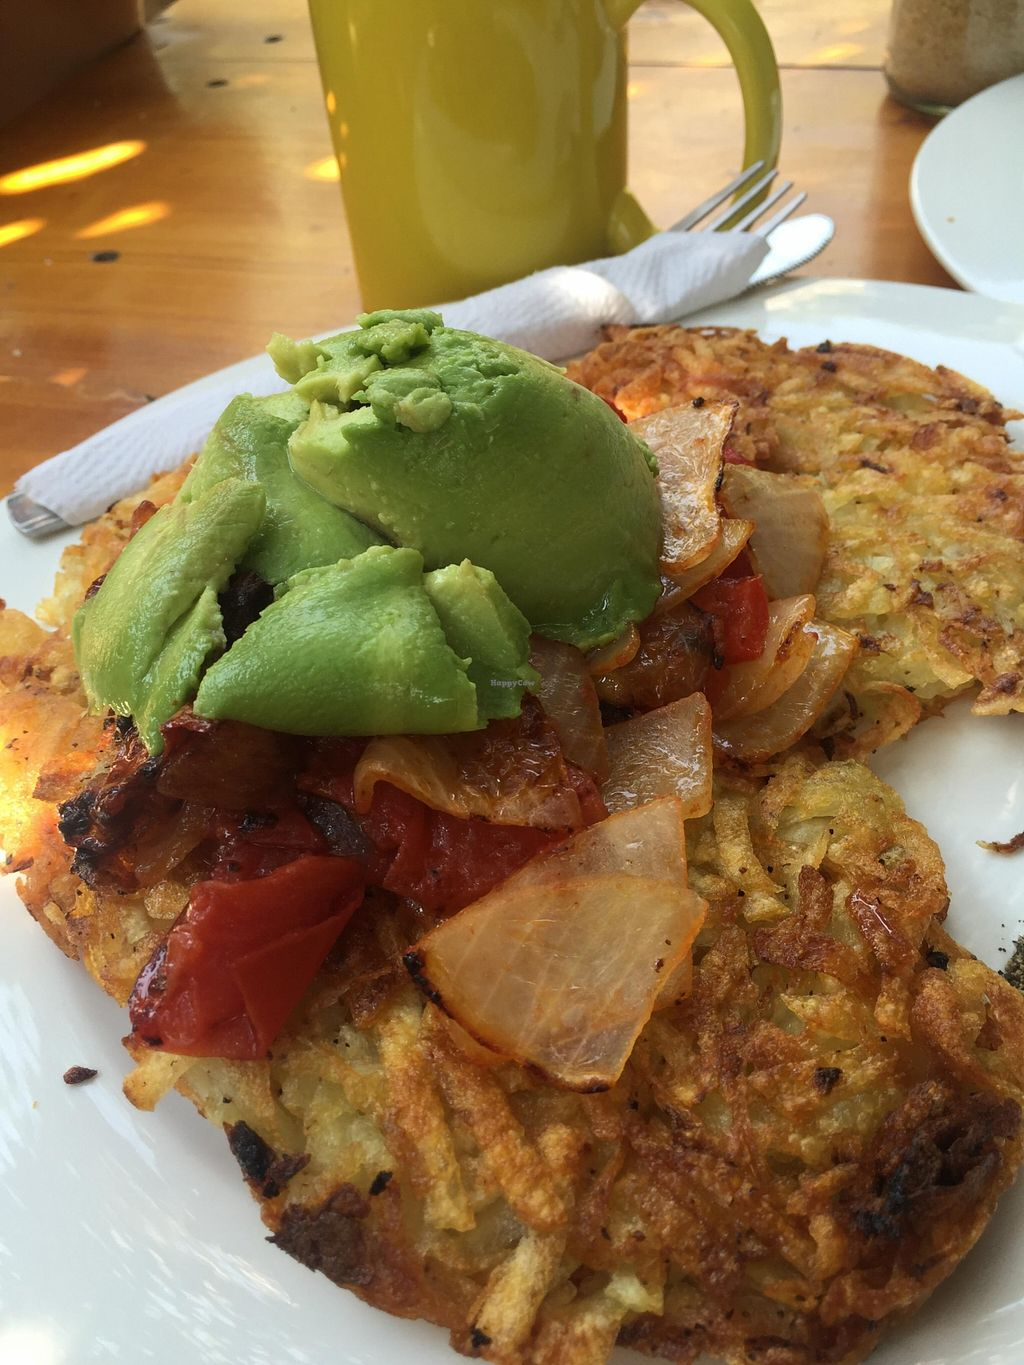 """Photo of Circles Cafe and Hostel  by <a href=""""/members/profile/Emily%20Horne"""">Emily Horne</a> <br/>Breakfast - Vegan Stack  <br/> April 3, 2016  - <a href='/contact/abuse/image/54261/142492'>Report</a>"""